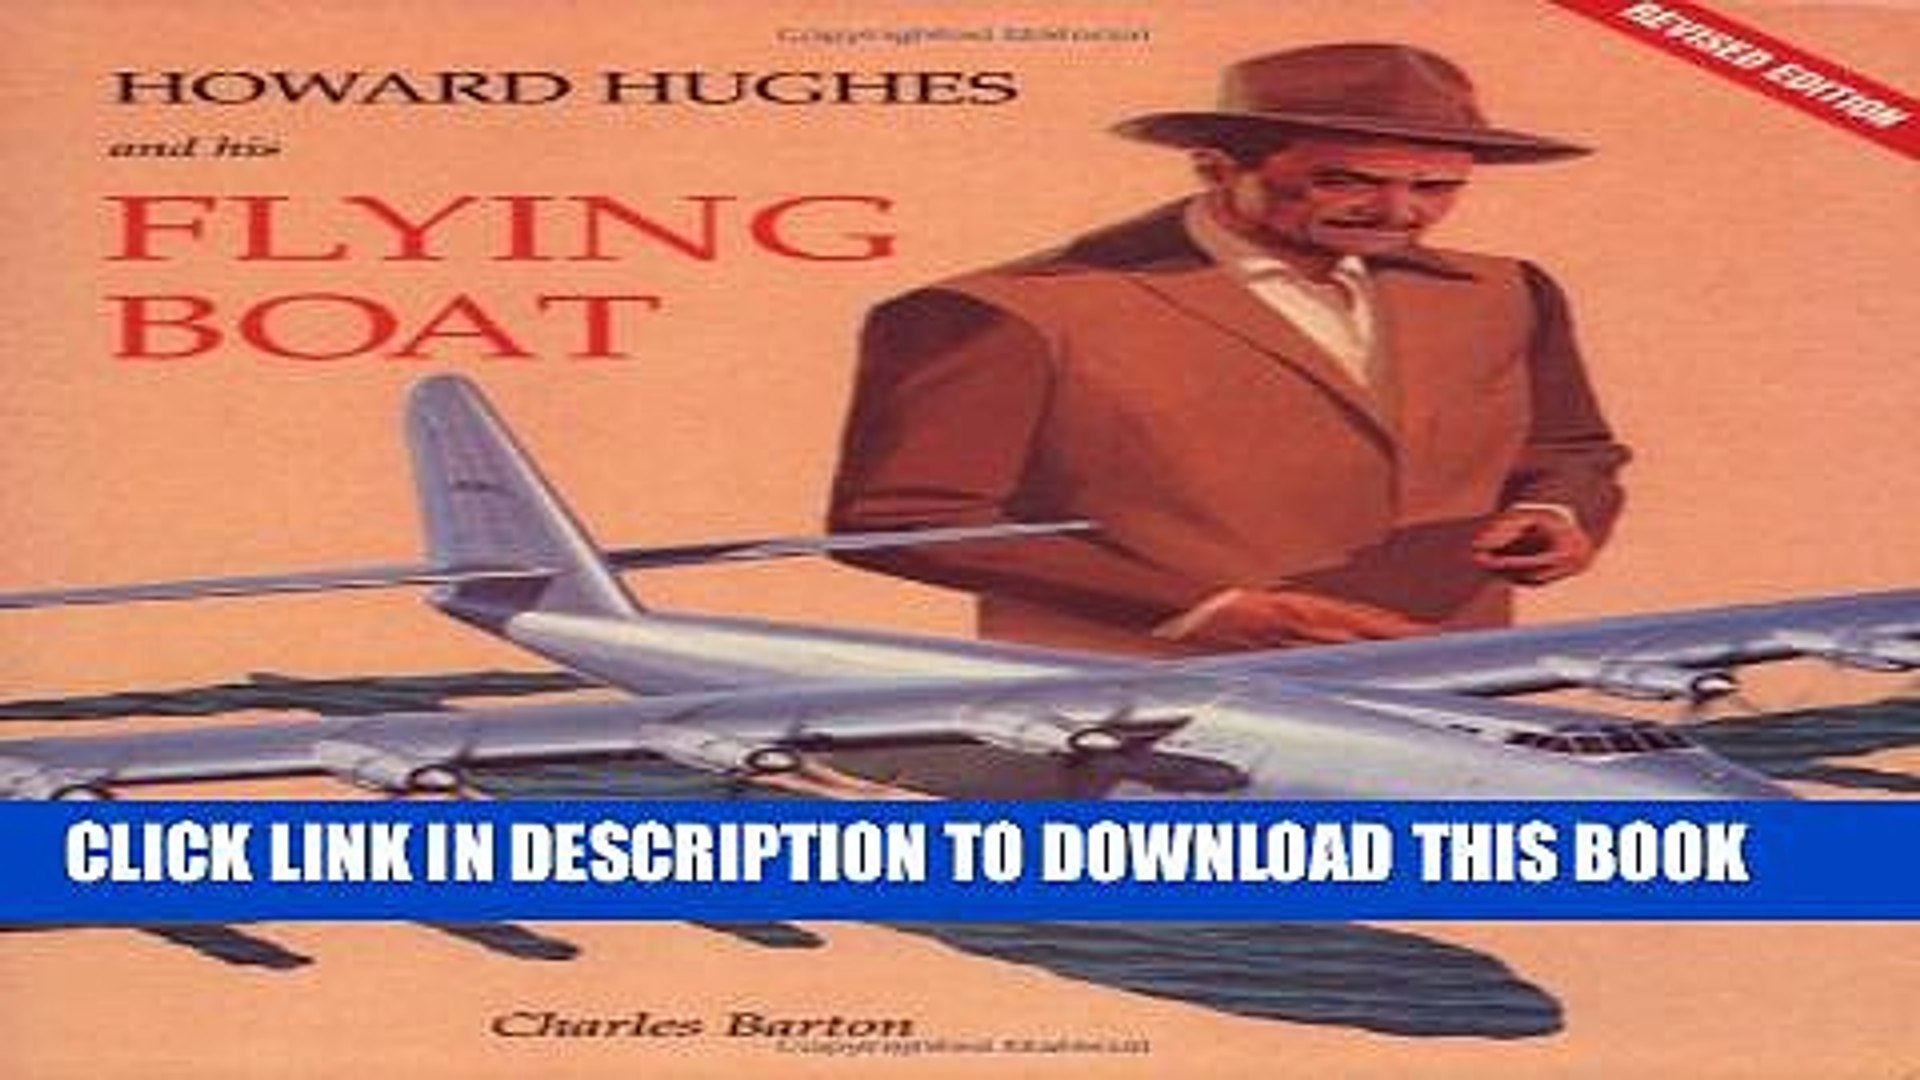 Behind the Power and Tragic Downfall of Howard Hughes by His Closest Advisor Next to Hughes